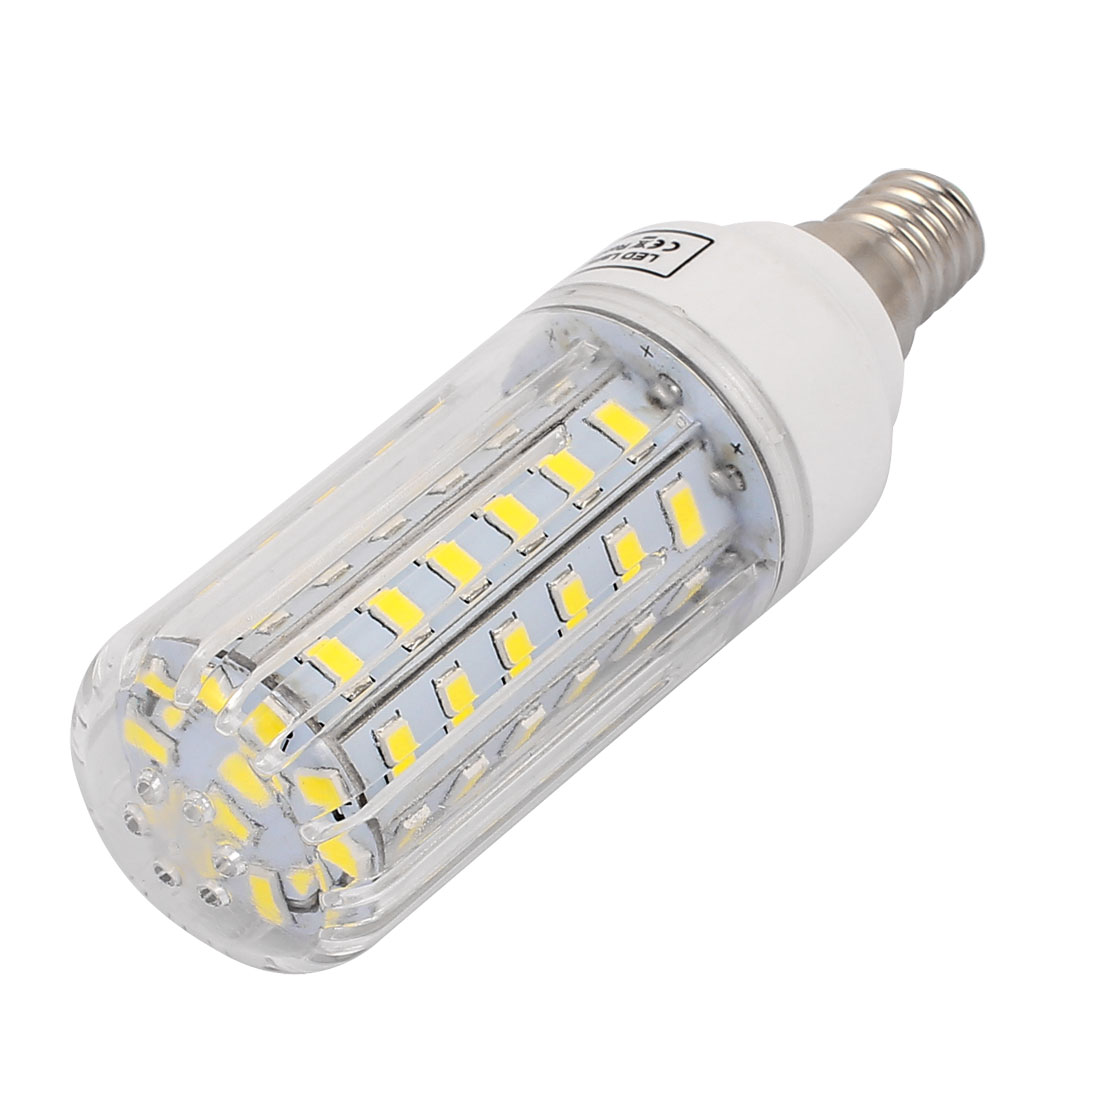 AC 220V E14 7W Pure White 60 LEDs 5733 SMD Energy Saving Silicone Corn Light Bulb